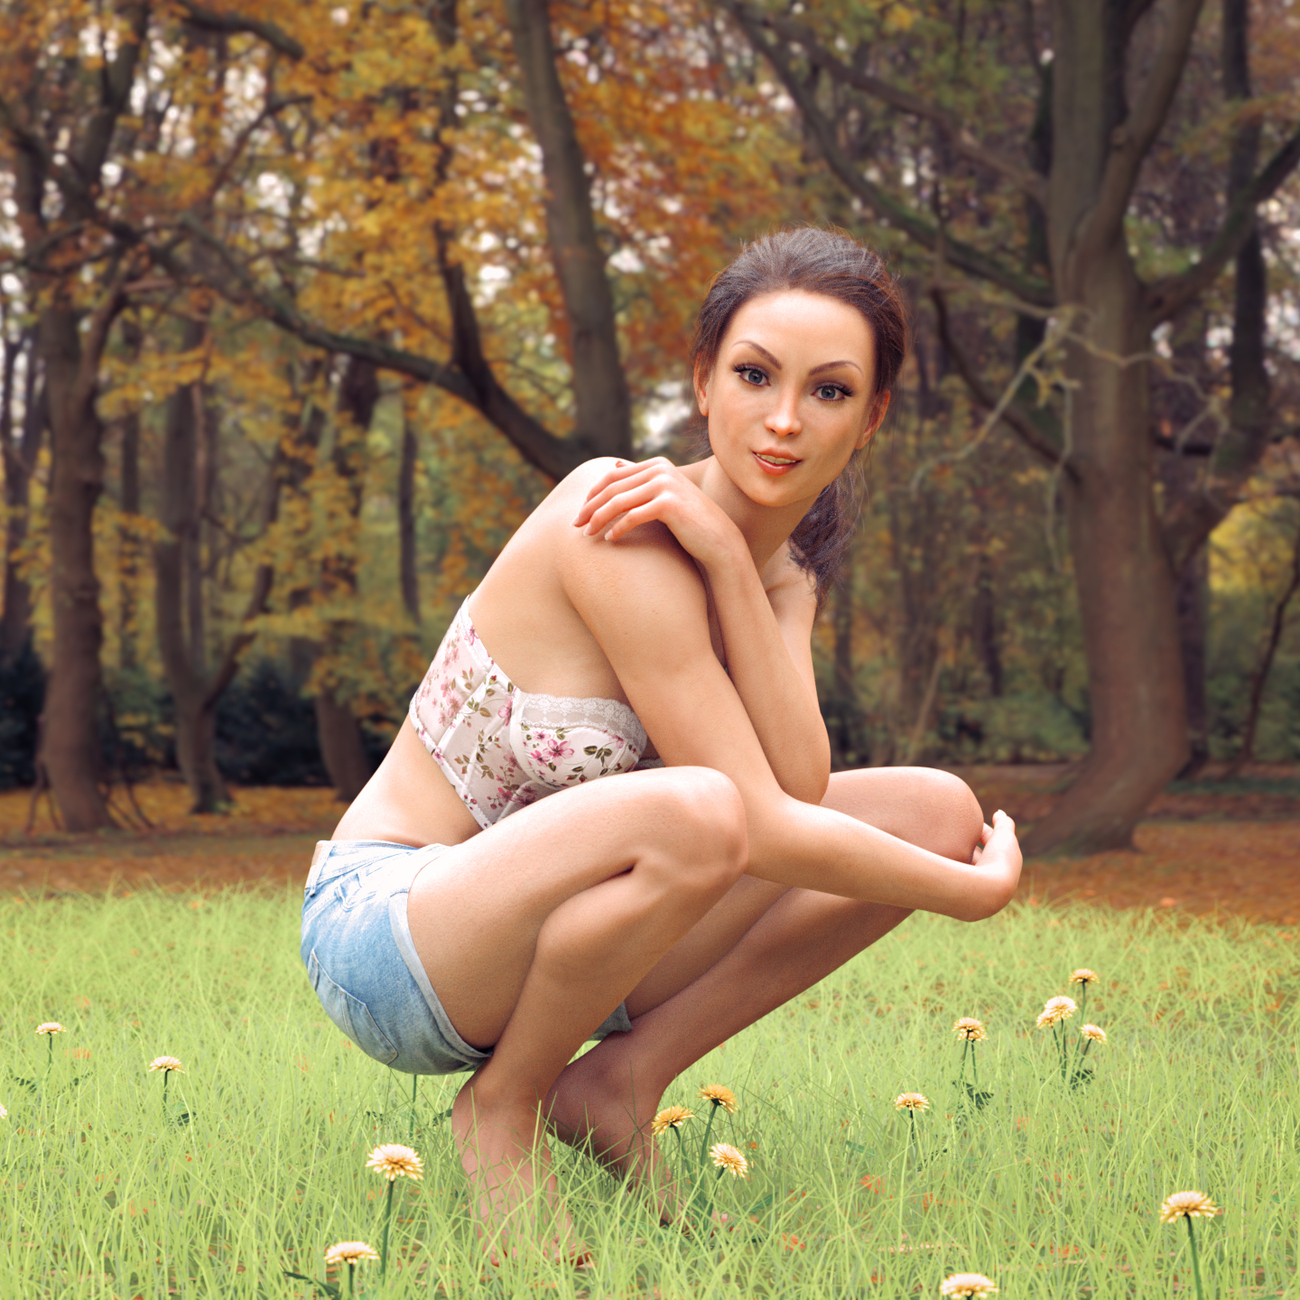 Martina in the Park by MarkCM